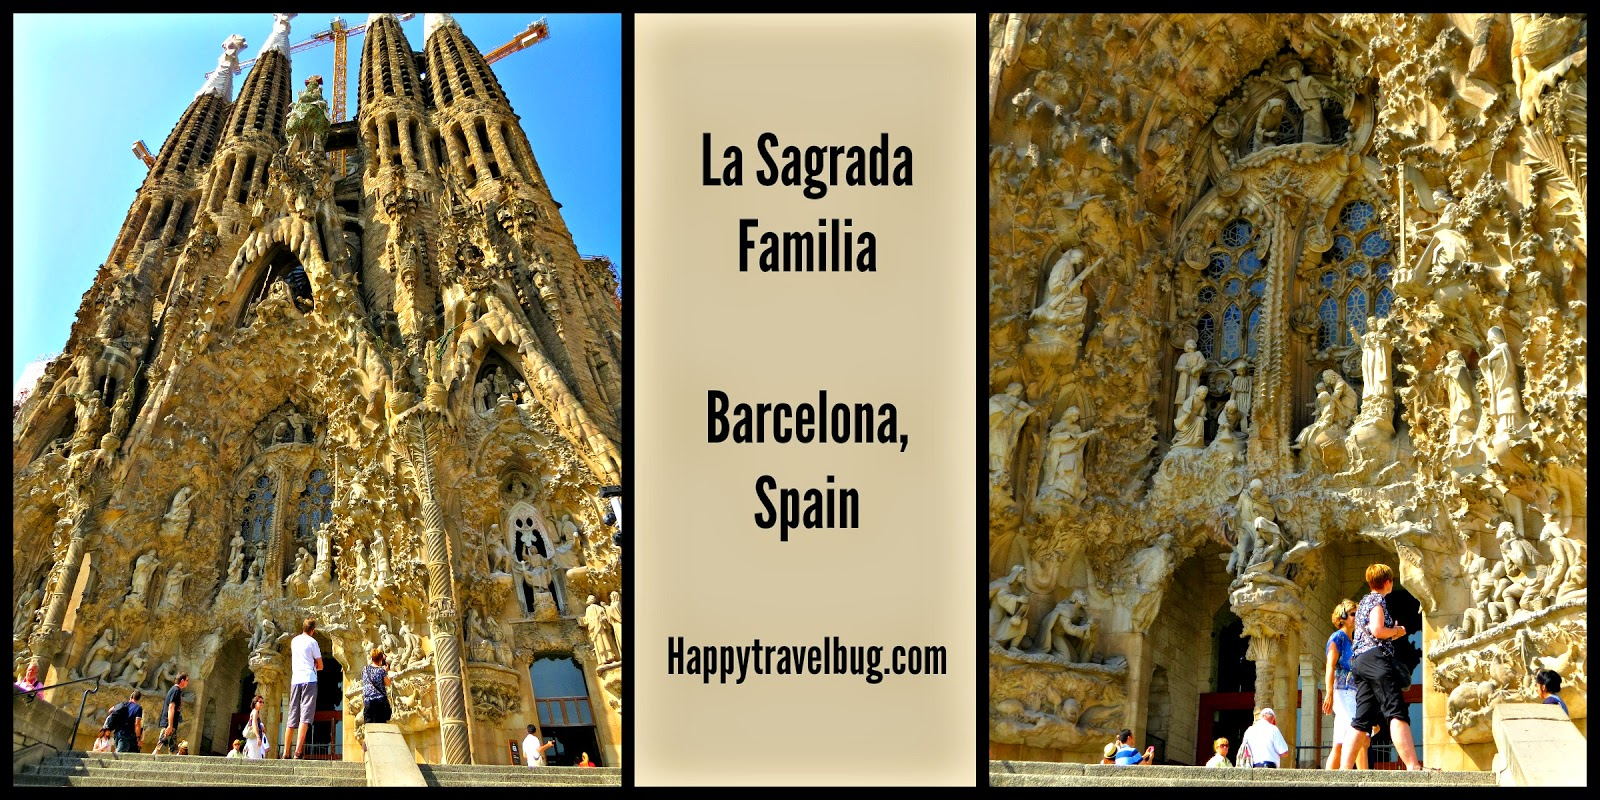 The happy travel bug la sagrada familia in barcelona spain for La sagrada familia barcelona spain